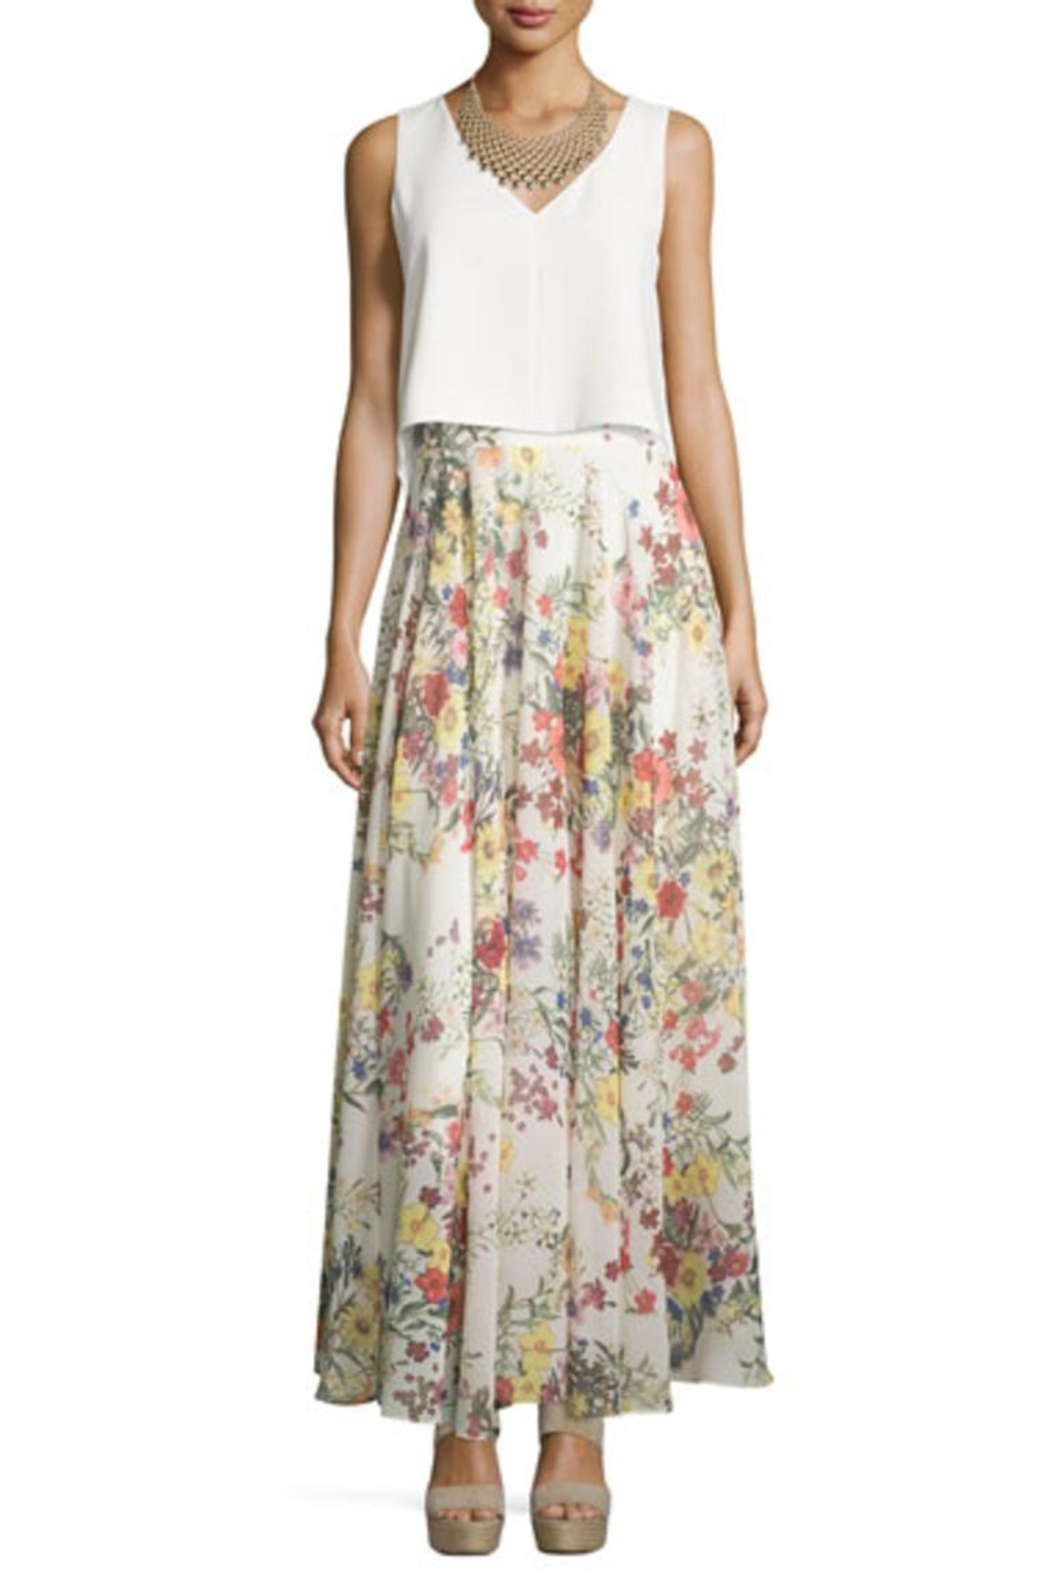 Lucy Paris Garden Print Skirt - Main Image